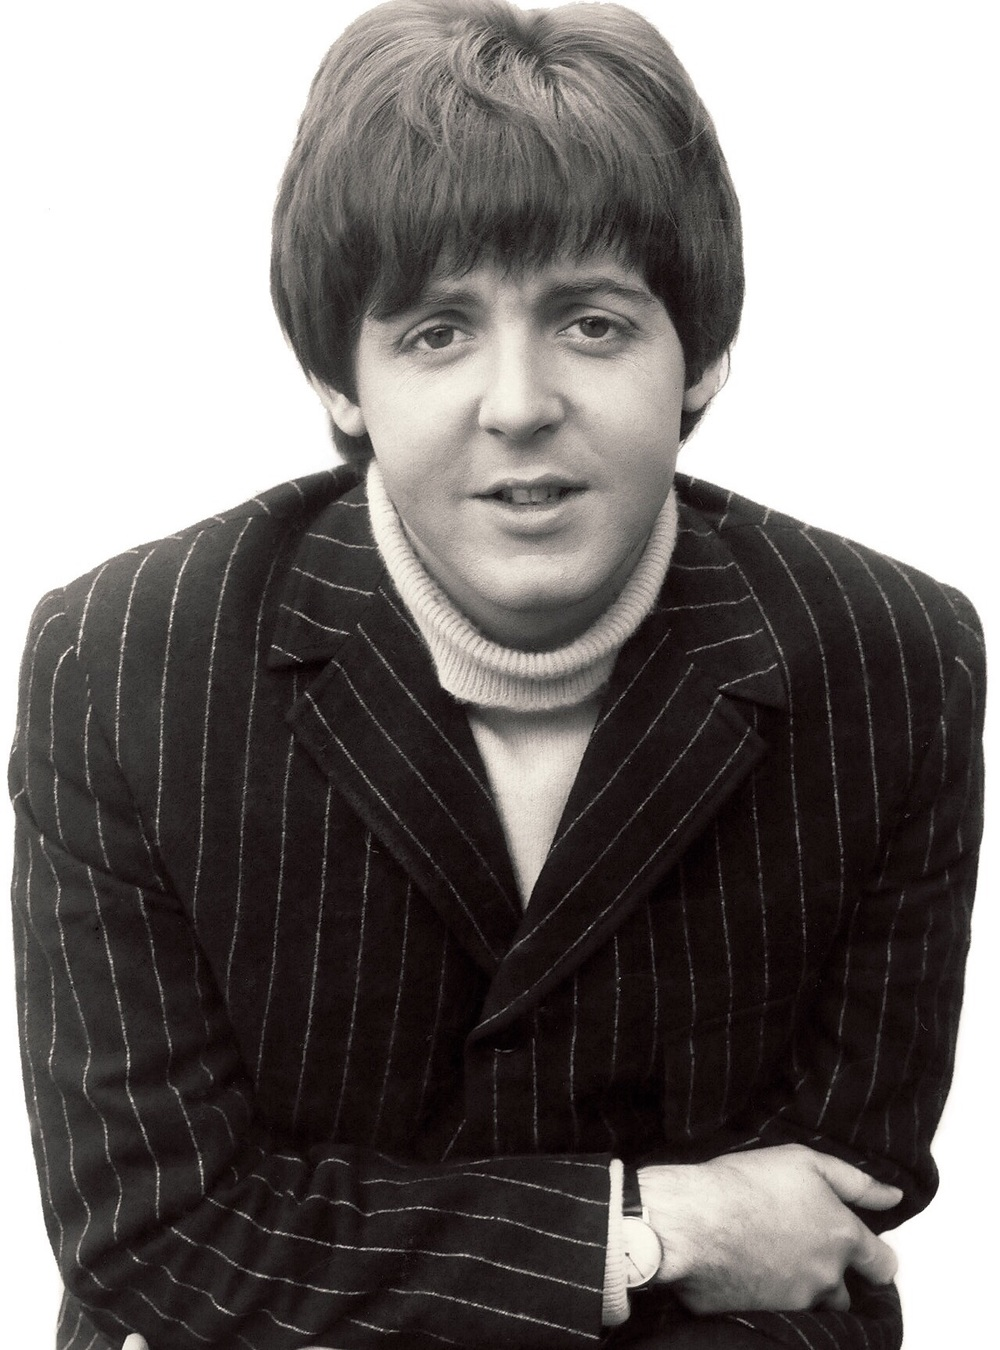 Paul McCartney 1965